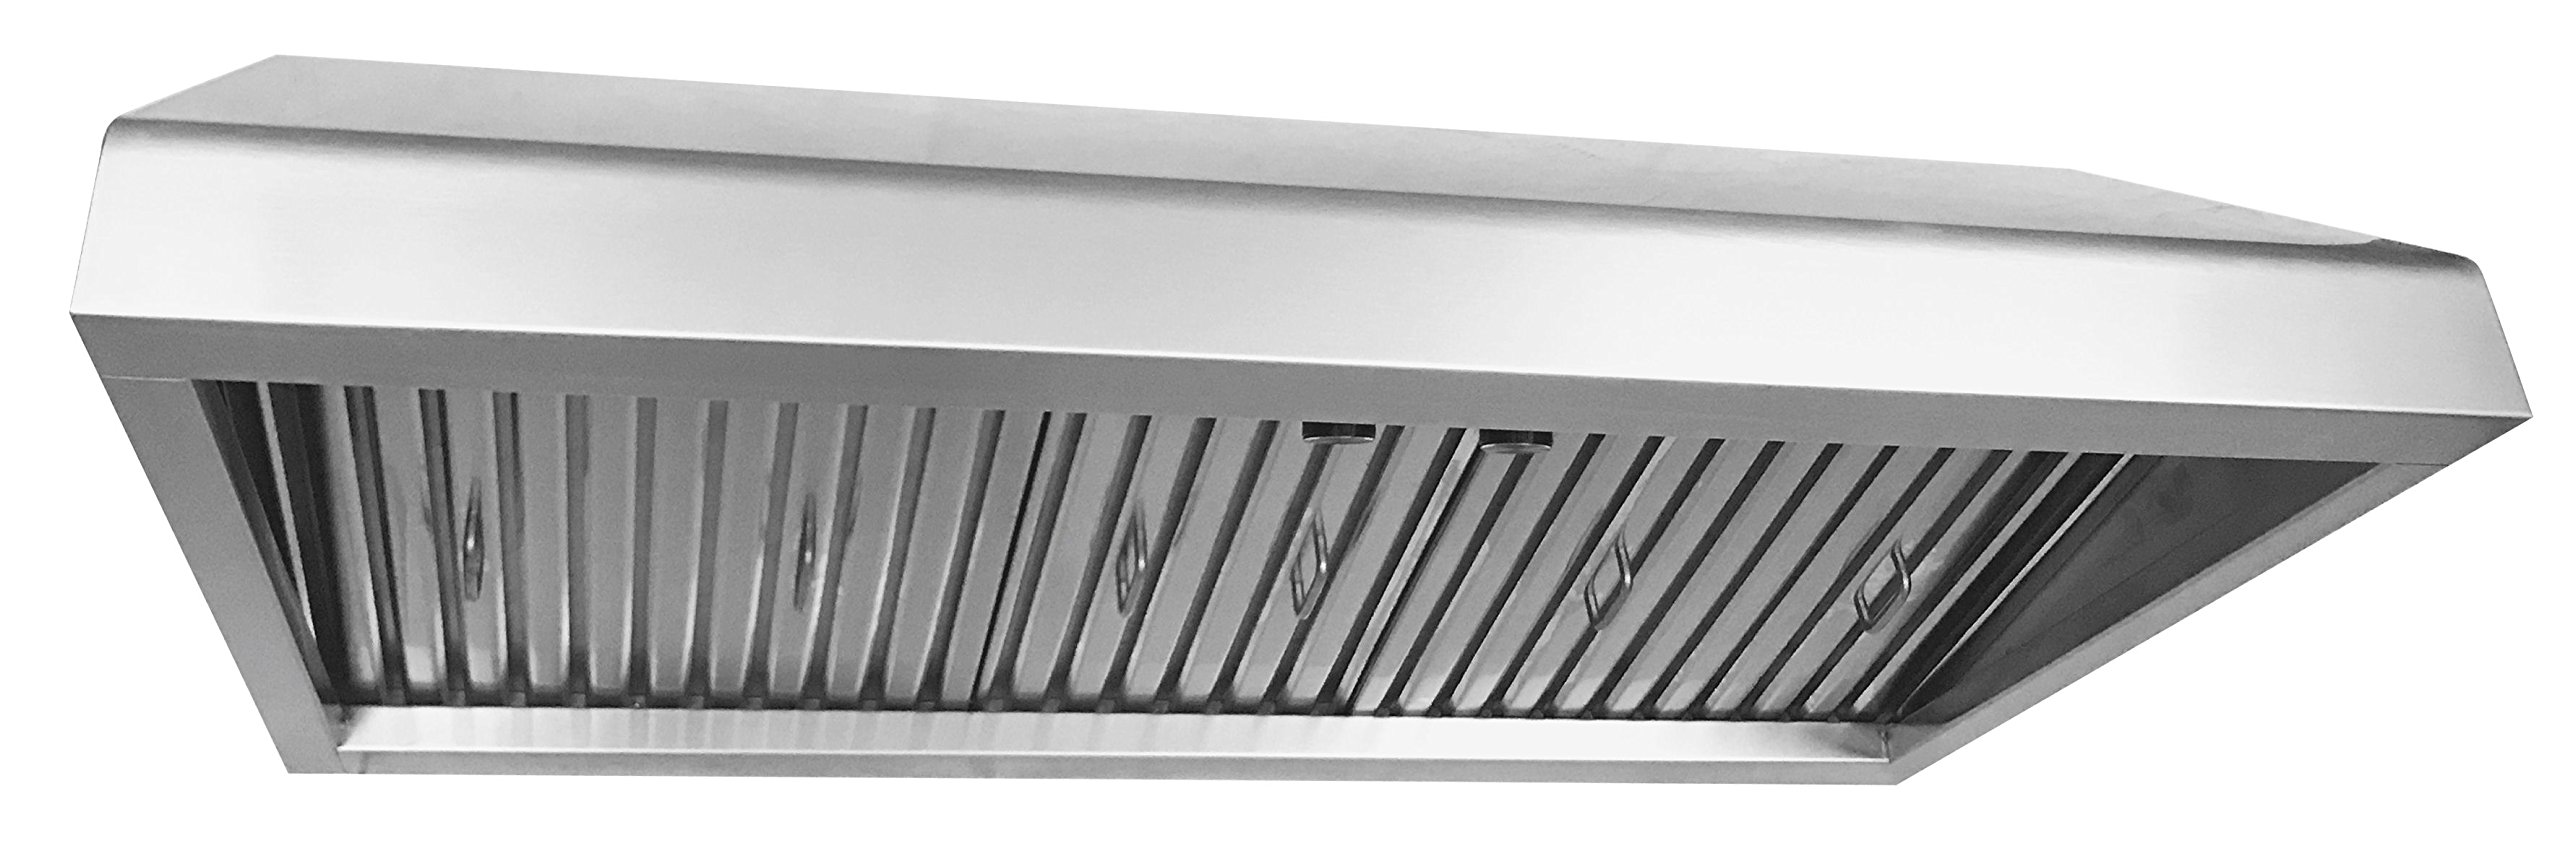 Cycene 30 Inch Professional Series Under Cabinet Stainless Steel Range Hood w/ Baffle Filter @ 900CFM - CY-RH61PS-30